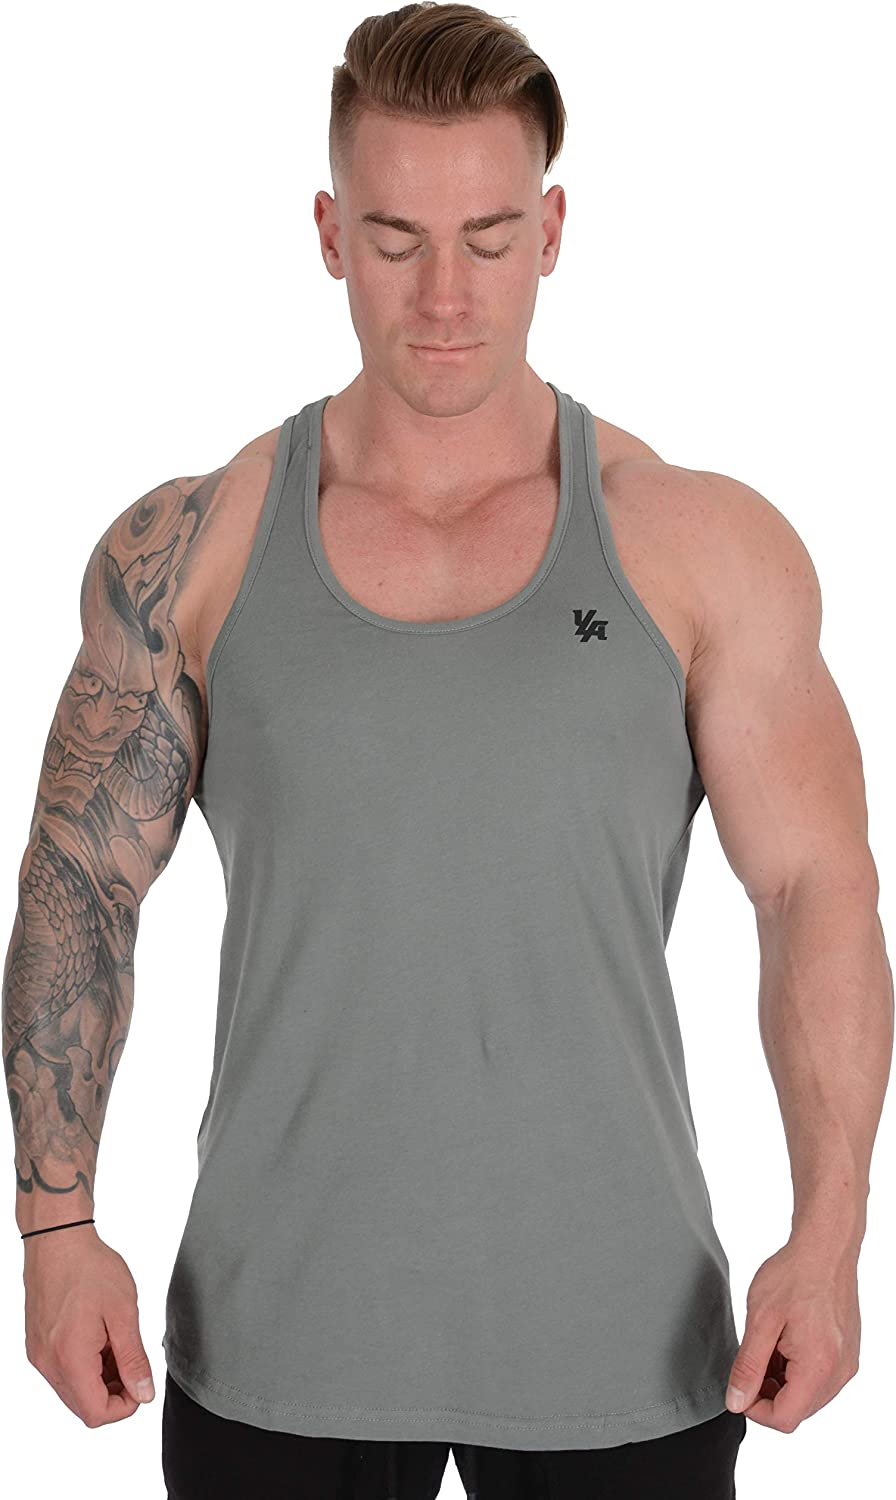 YoungLA Stringer Tank Tops Men Workout Muscle Y Back Gym 302